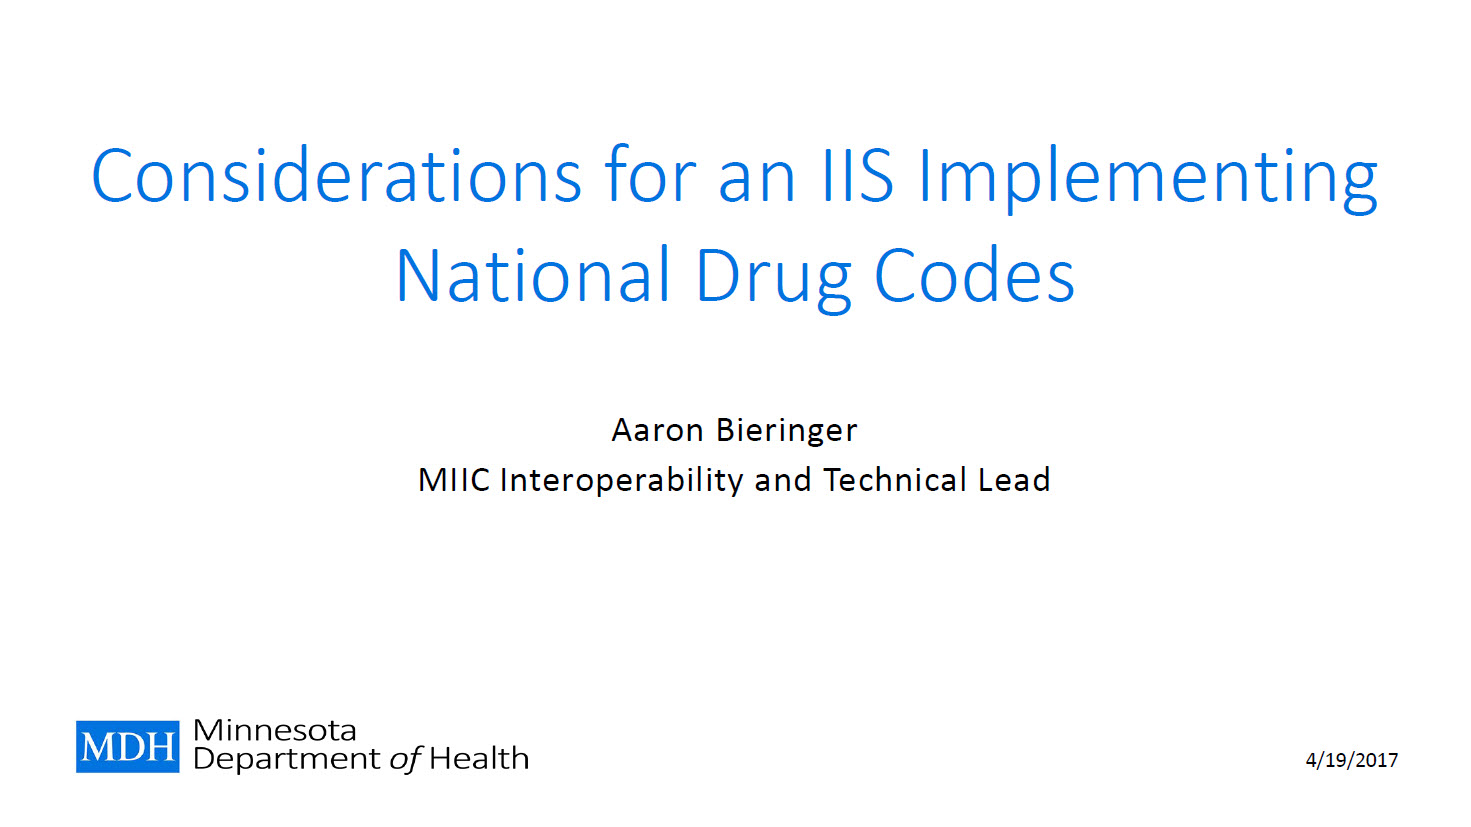 Considerations for an IIS Implementing National Drug Codes